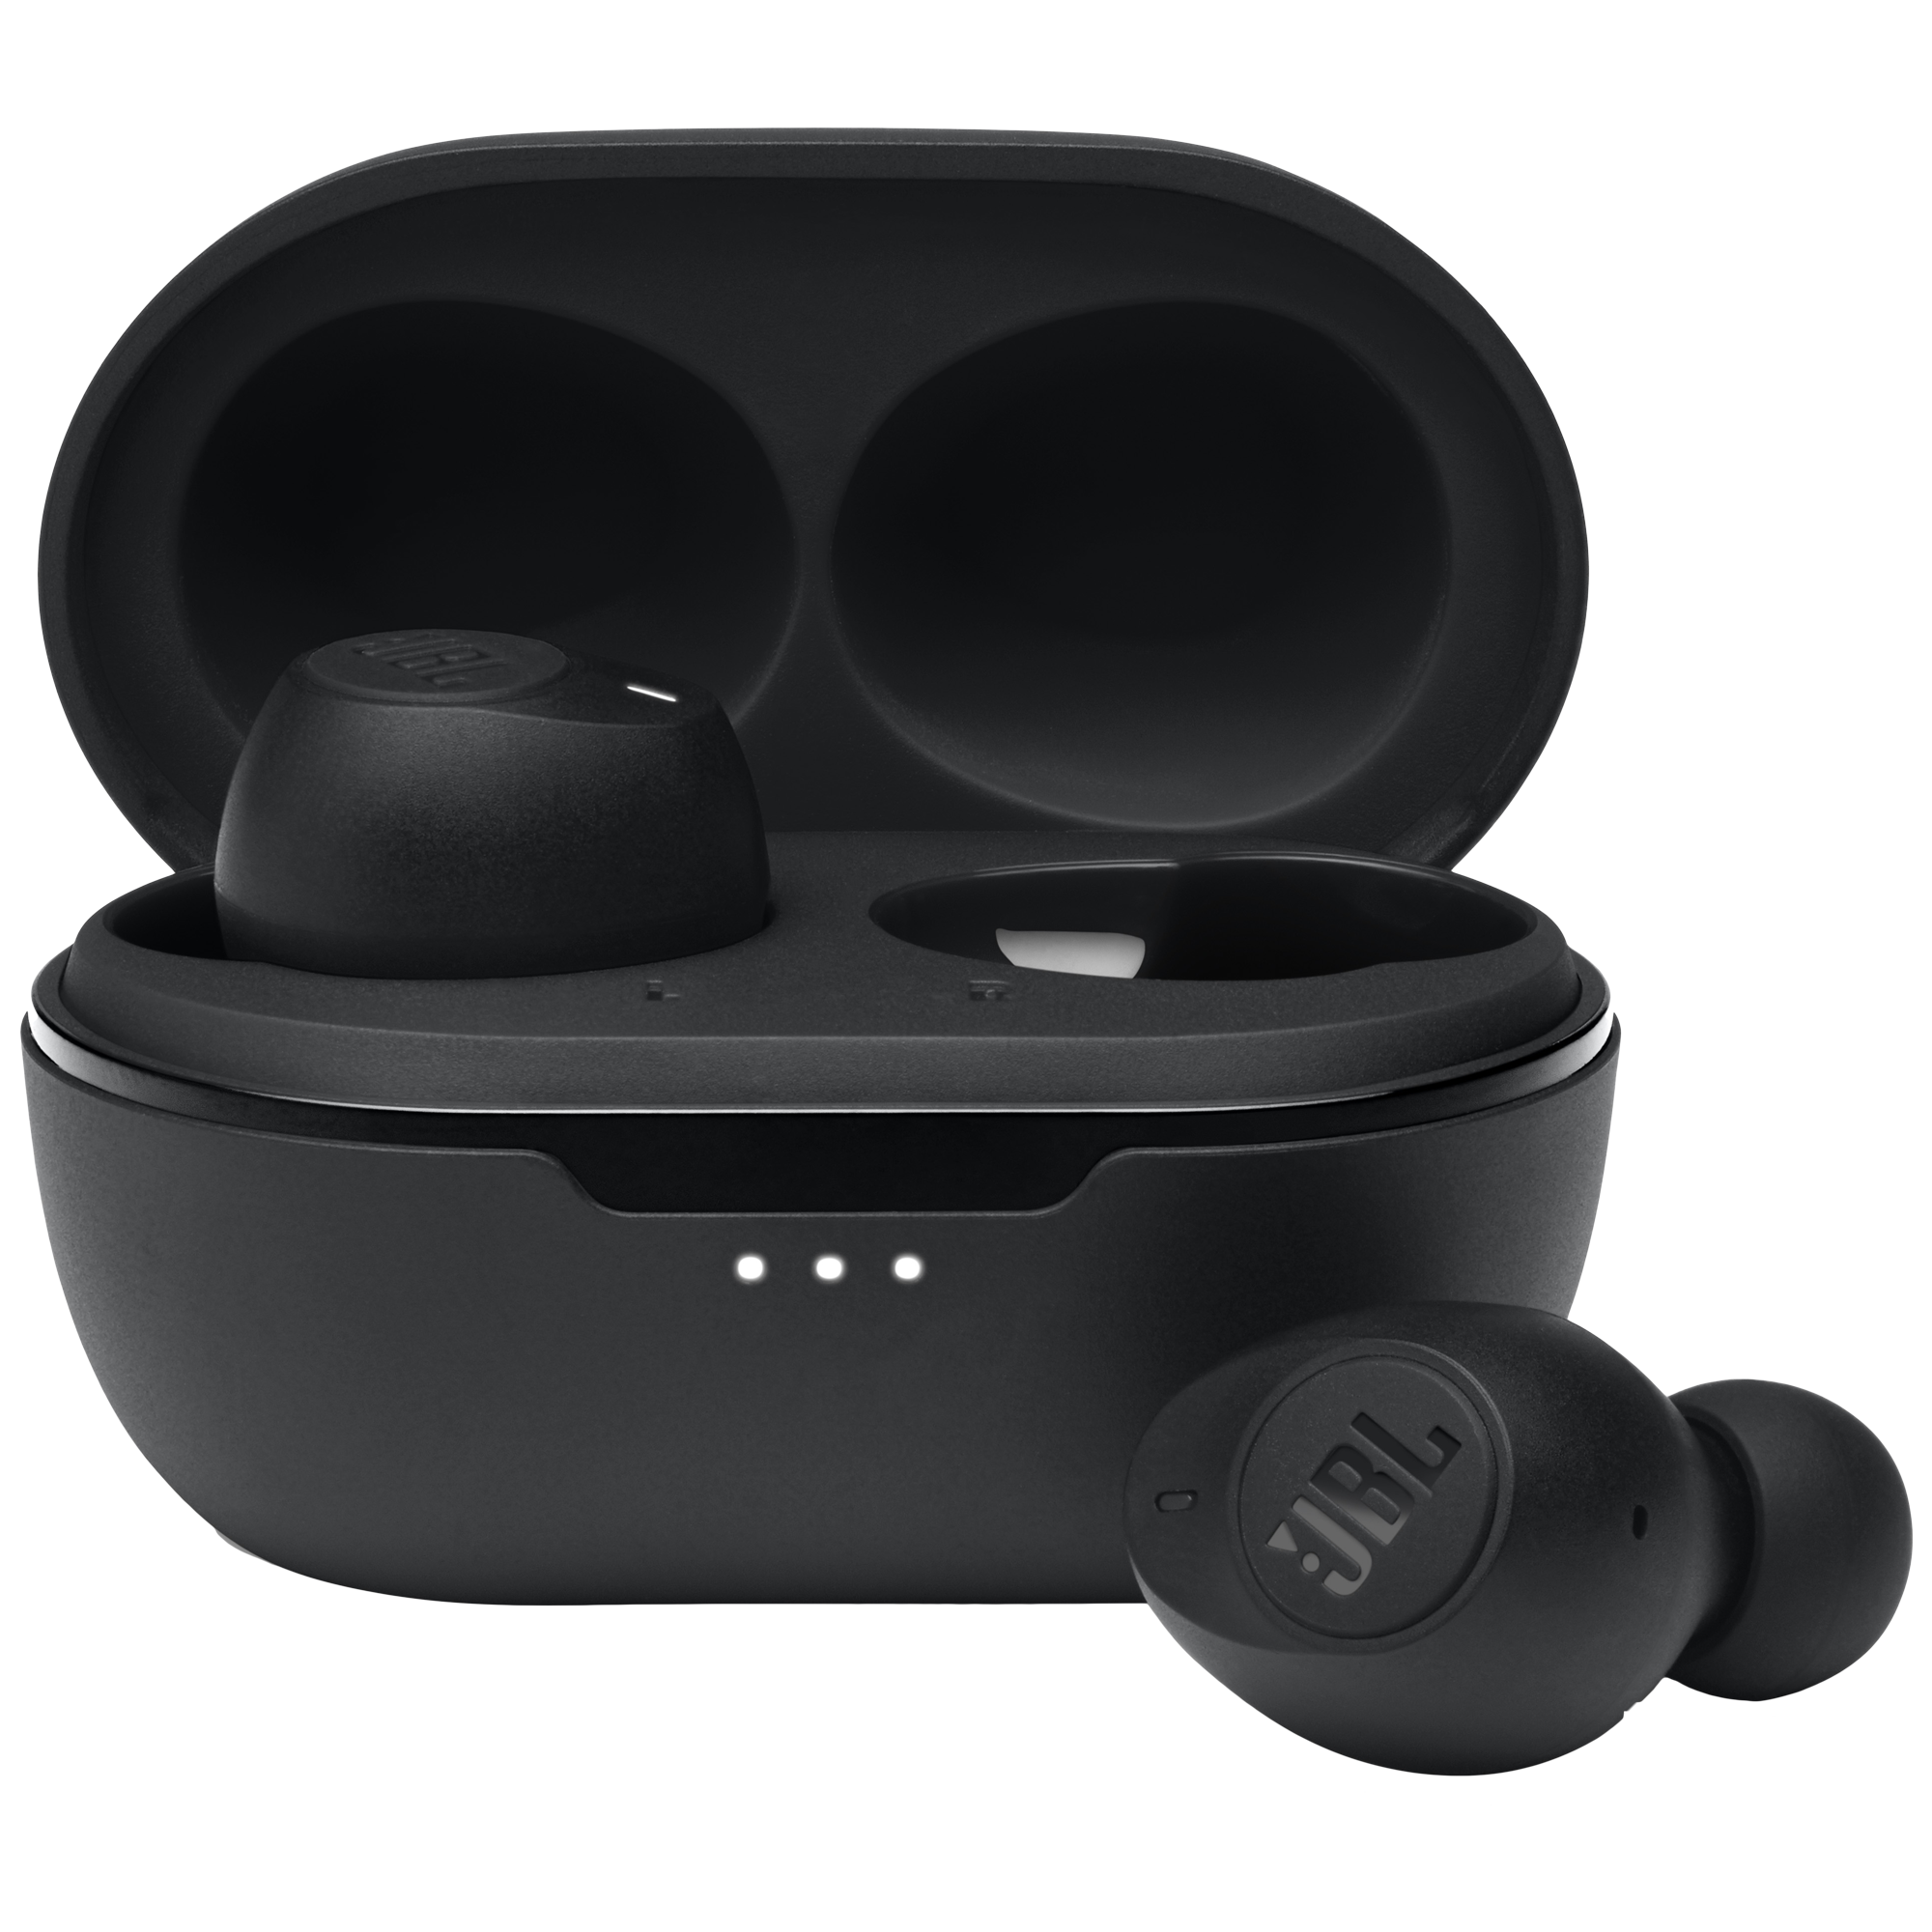 JBL Tune 115TWSIn-Ear Truly Wireless Earbuds with Mic (Bluetooth 5.0, Voice Assistant Supported, JBLT115TWSBLK, Black)_1